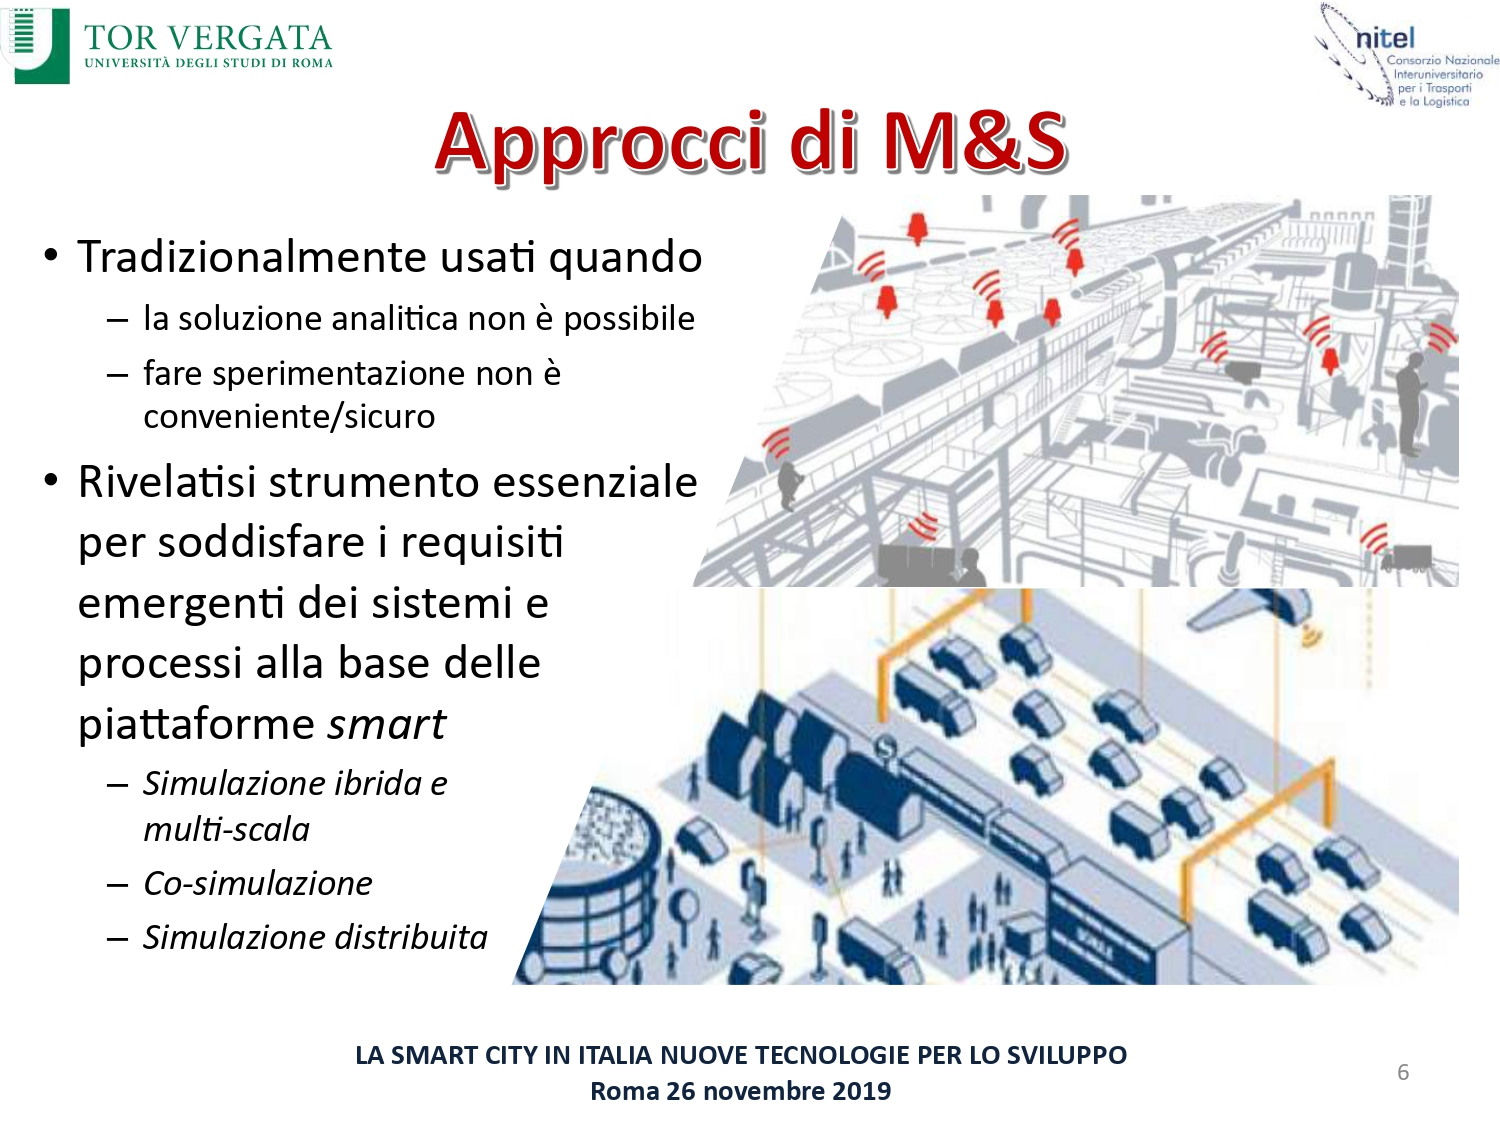 Smart city 26 novembre 2019 dambrogio_page-0005